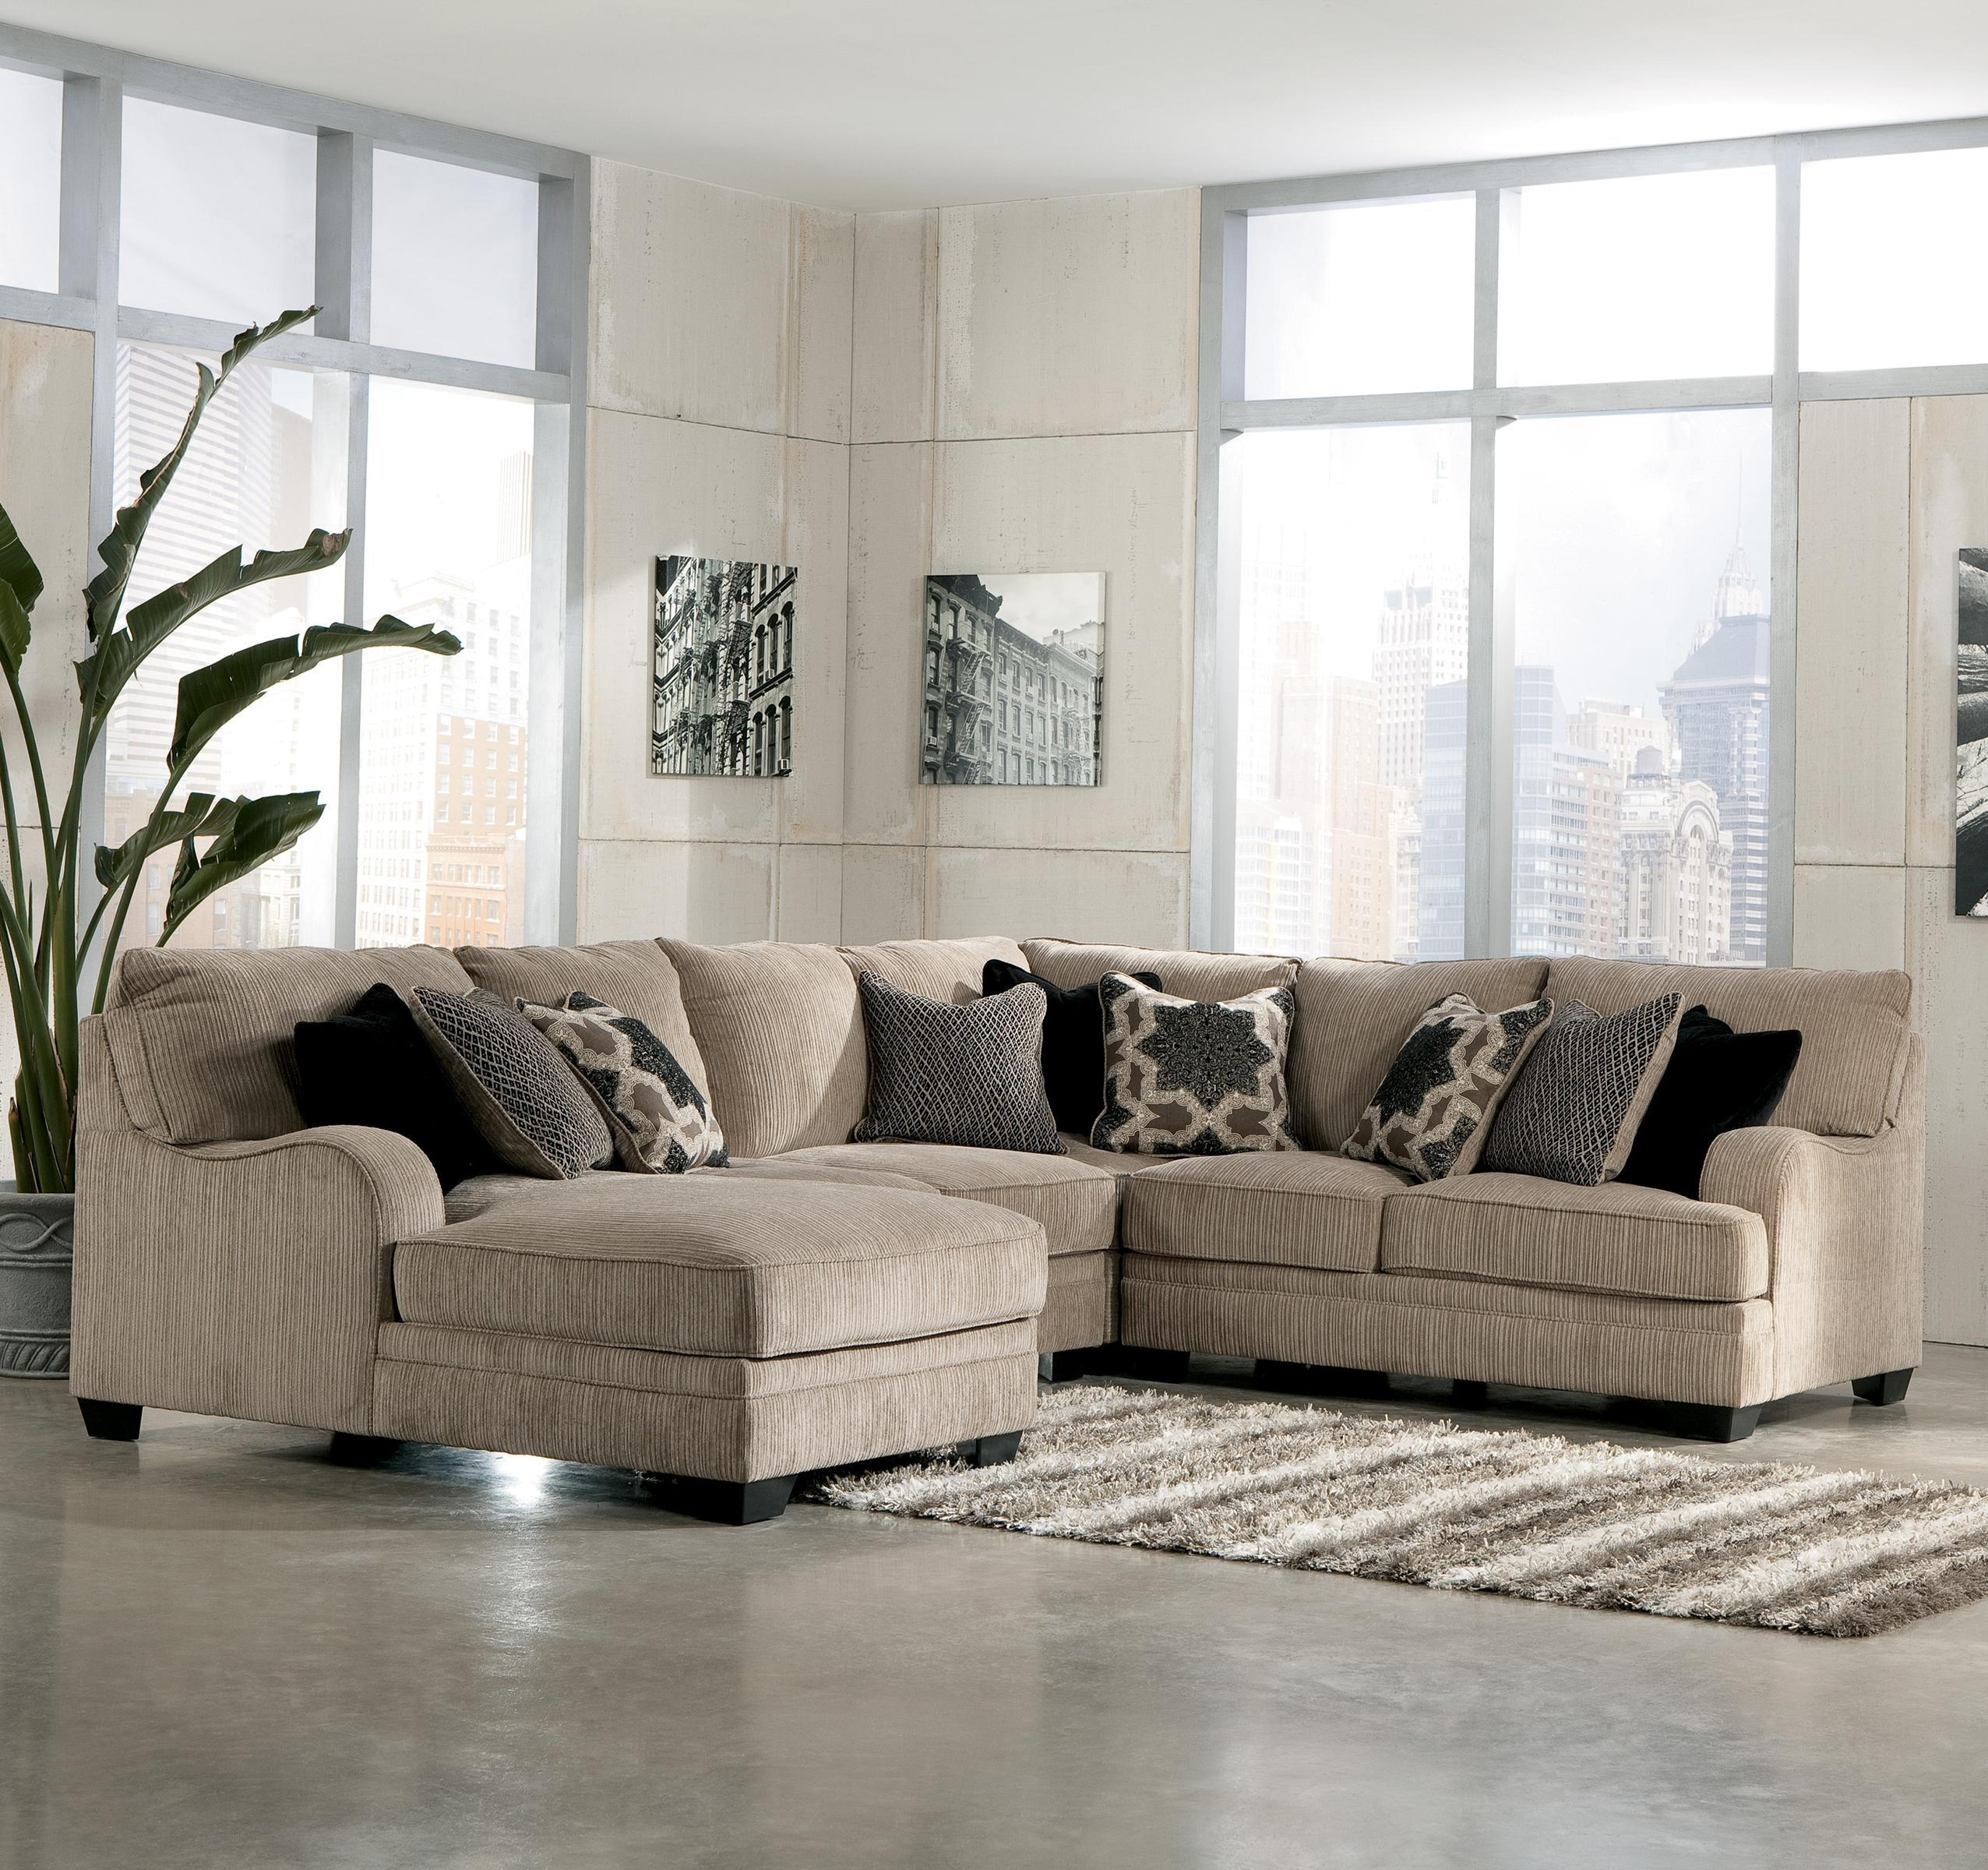 Chair & Sofa: Have An Interesting Living Room With Ashley Intended For Deep Sectionals (Image 1 of 15)